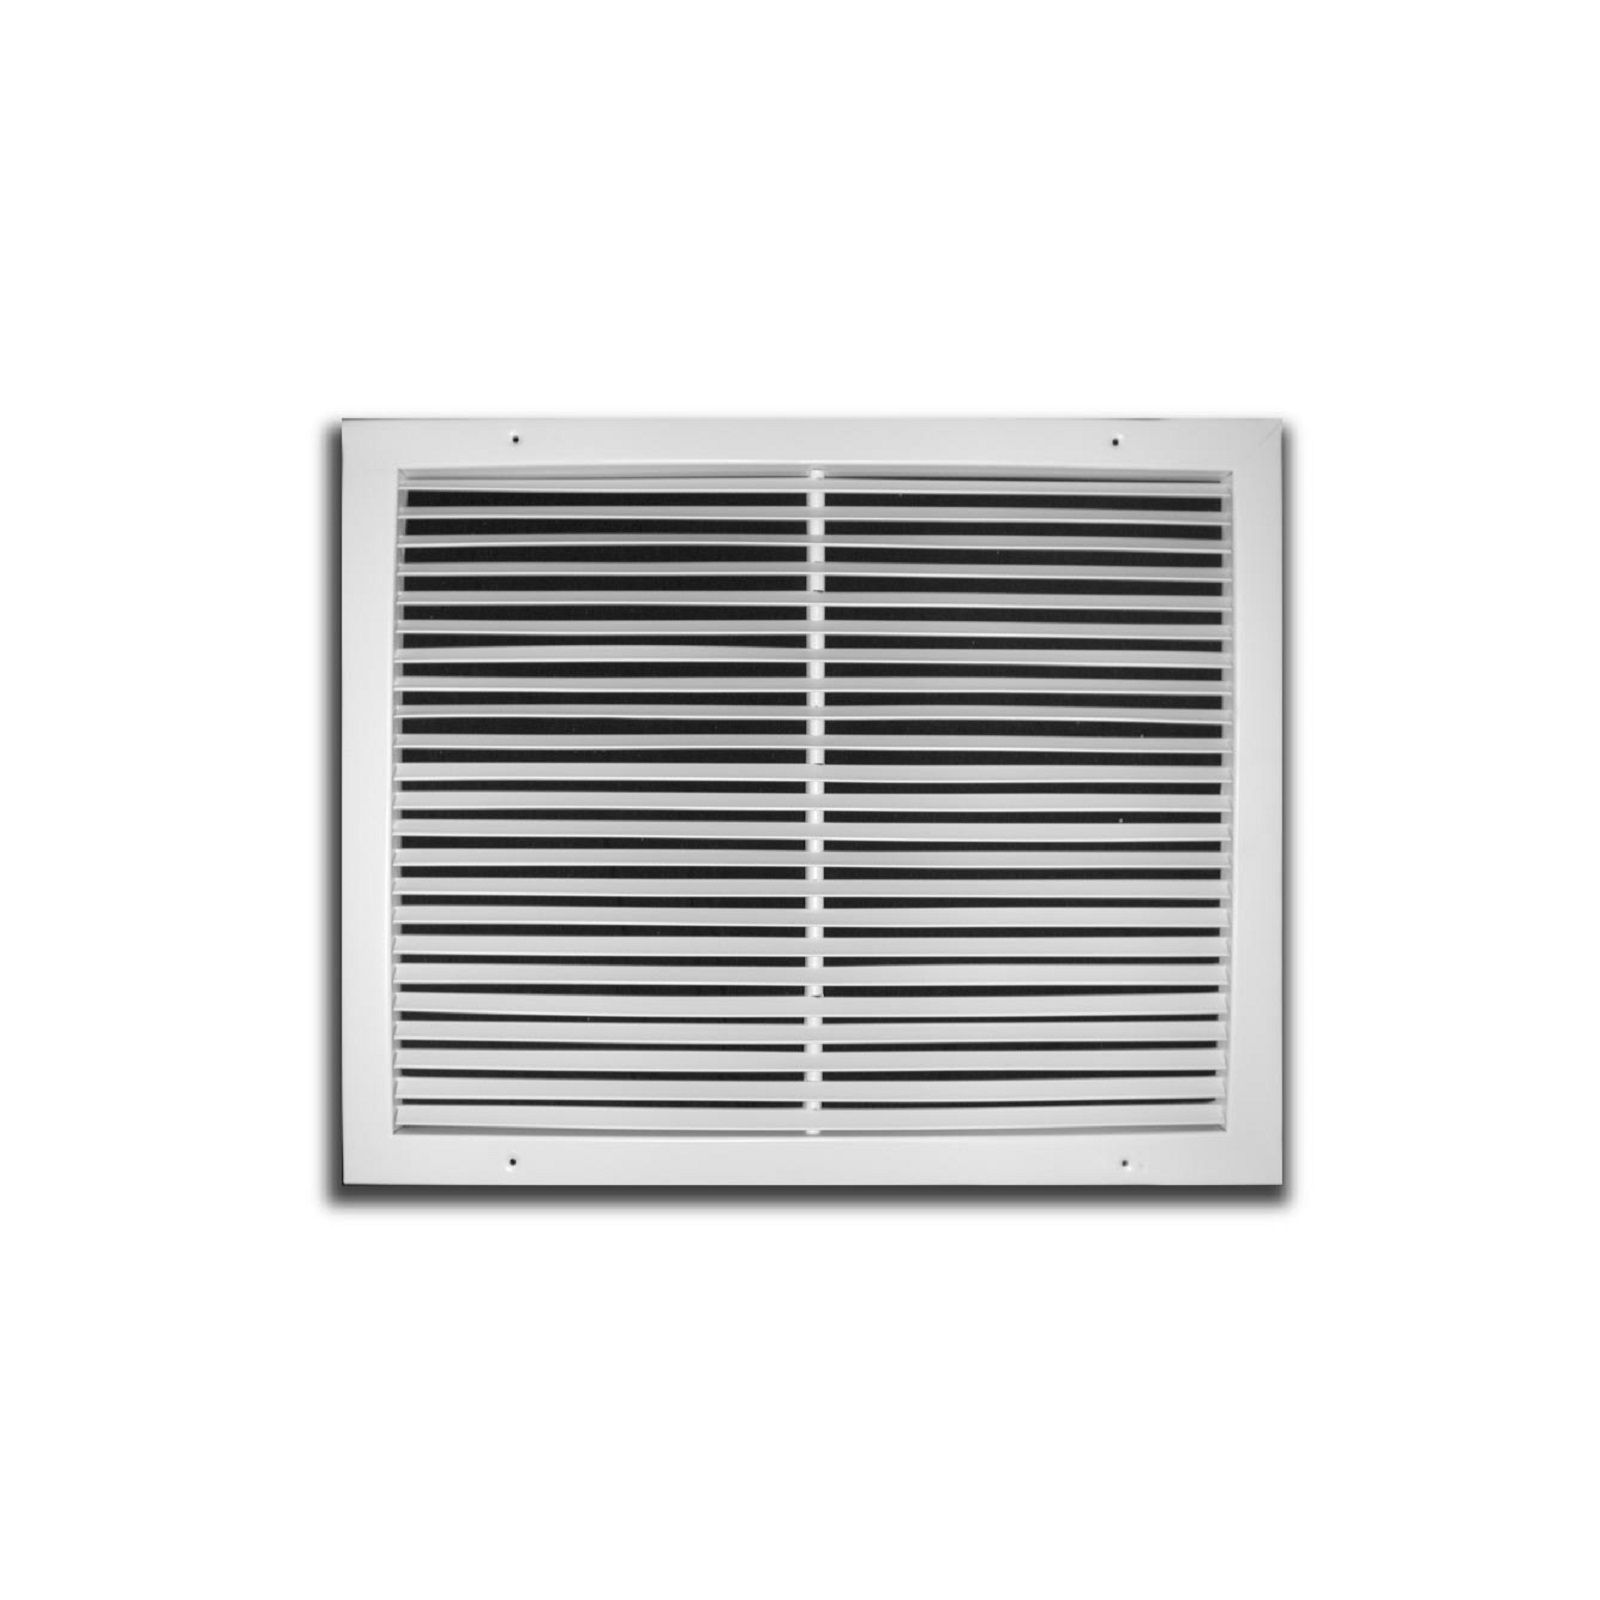 "TRUaire 270 06X06 - Steel Fixed Bar Return Air Grille, White, 06"" X 06"""